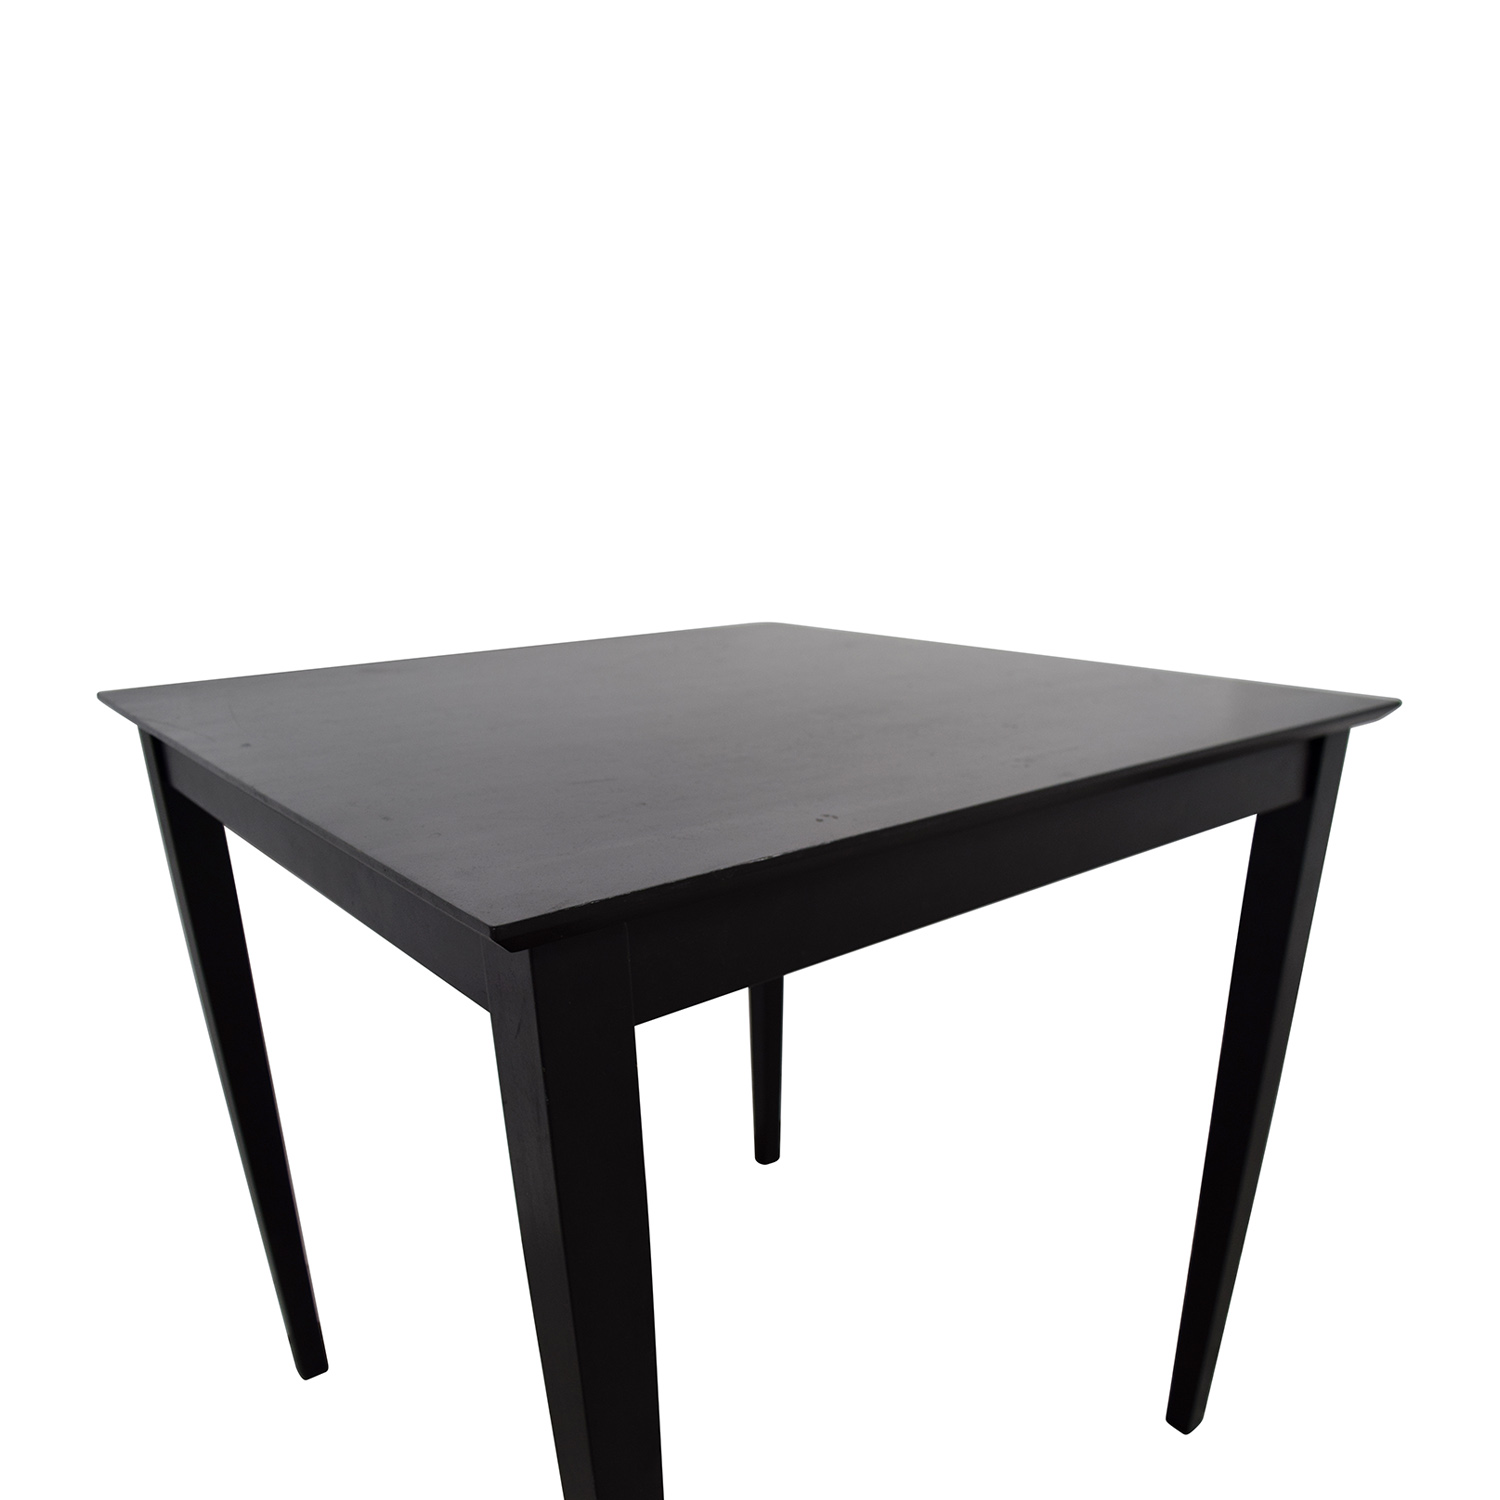 table haute carre ikea cheap console extensible ikea table roundpics deco maison occasion wenge. Black Bedroom Furniture Sets. Home Design Ideas